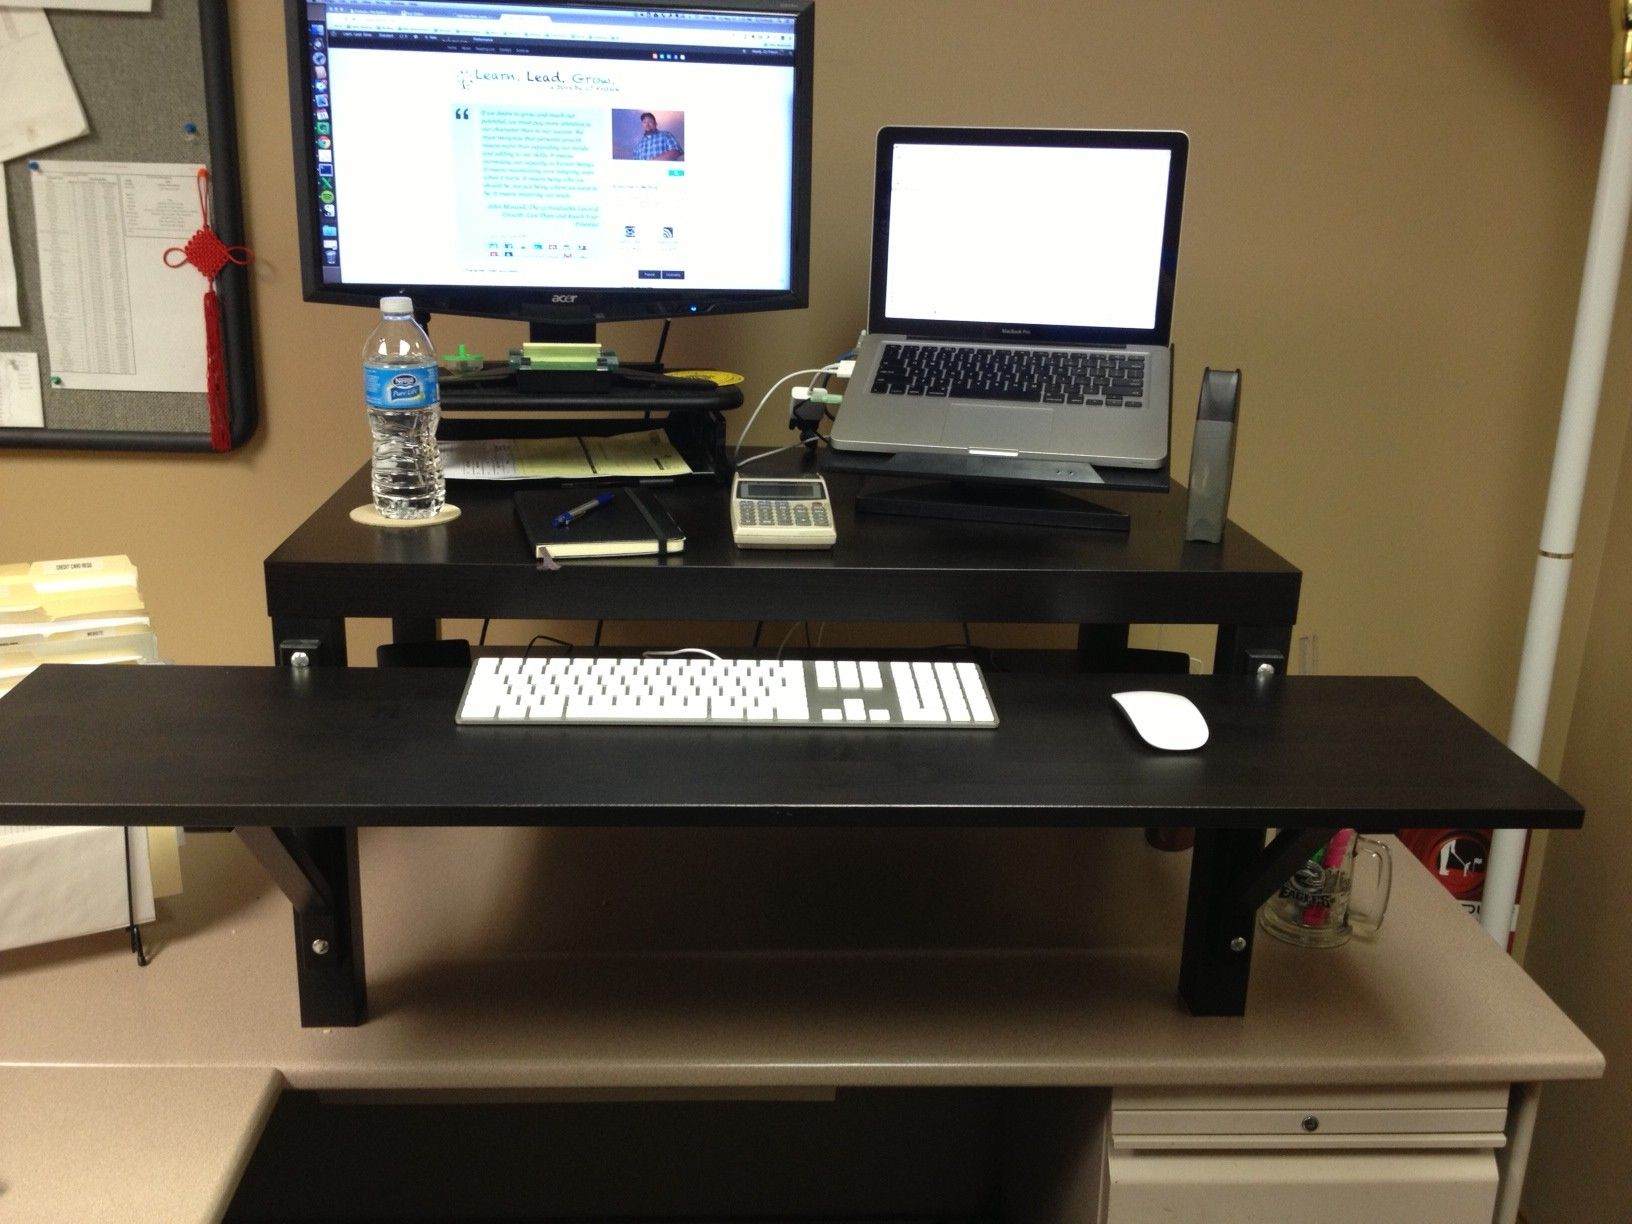 Diy ikea standing desk - Everybody Stand Up My Take On The Ikea Hack Stand Up Desk